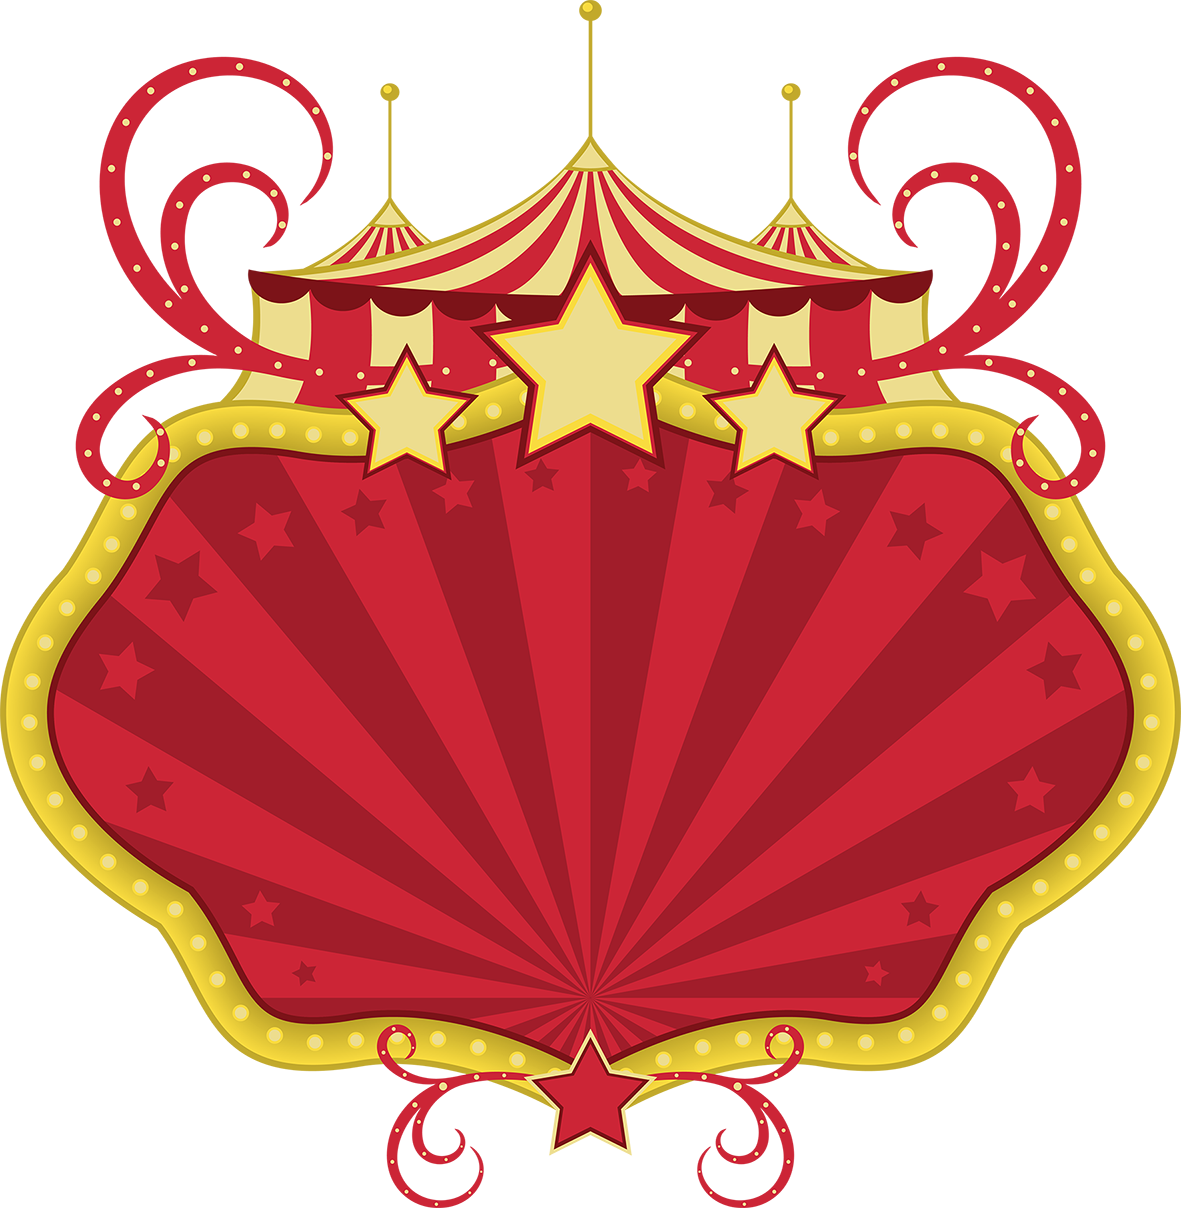 Clipart Tent Vintage Circus Clipart Tent Vintage Circus